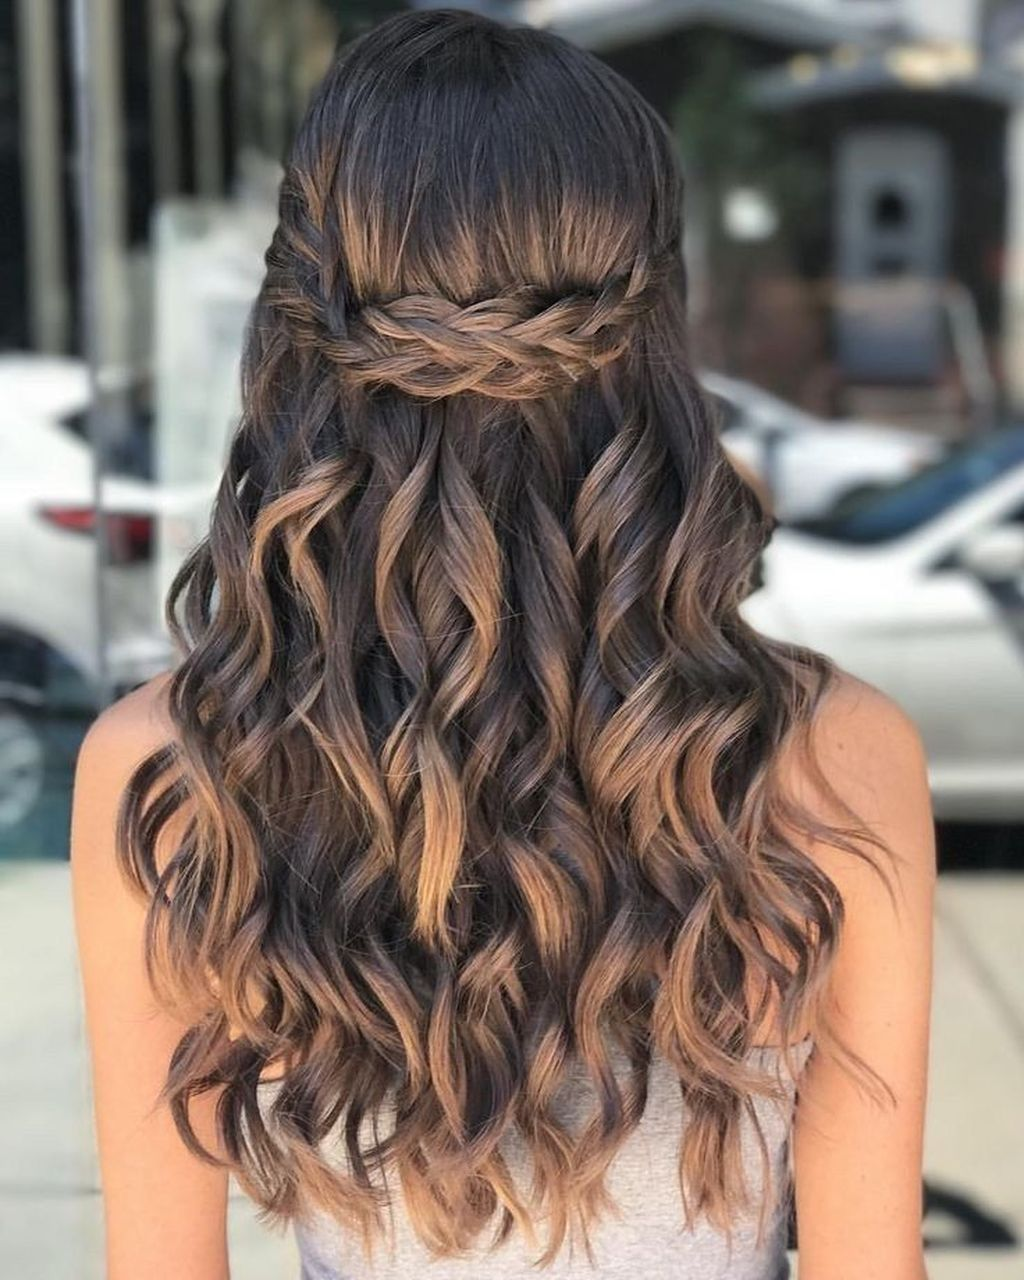 40 Pretty Prom Hairstyle Ideas For Curly Long Hair Prom Hairstyles